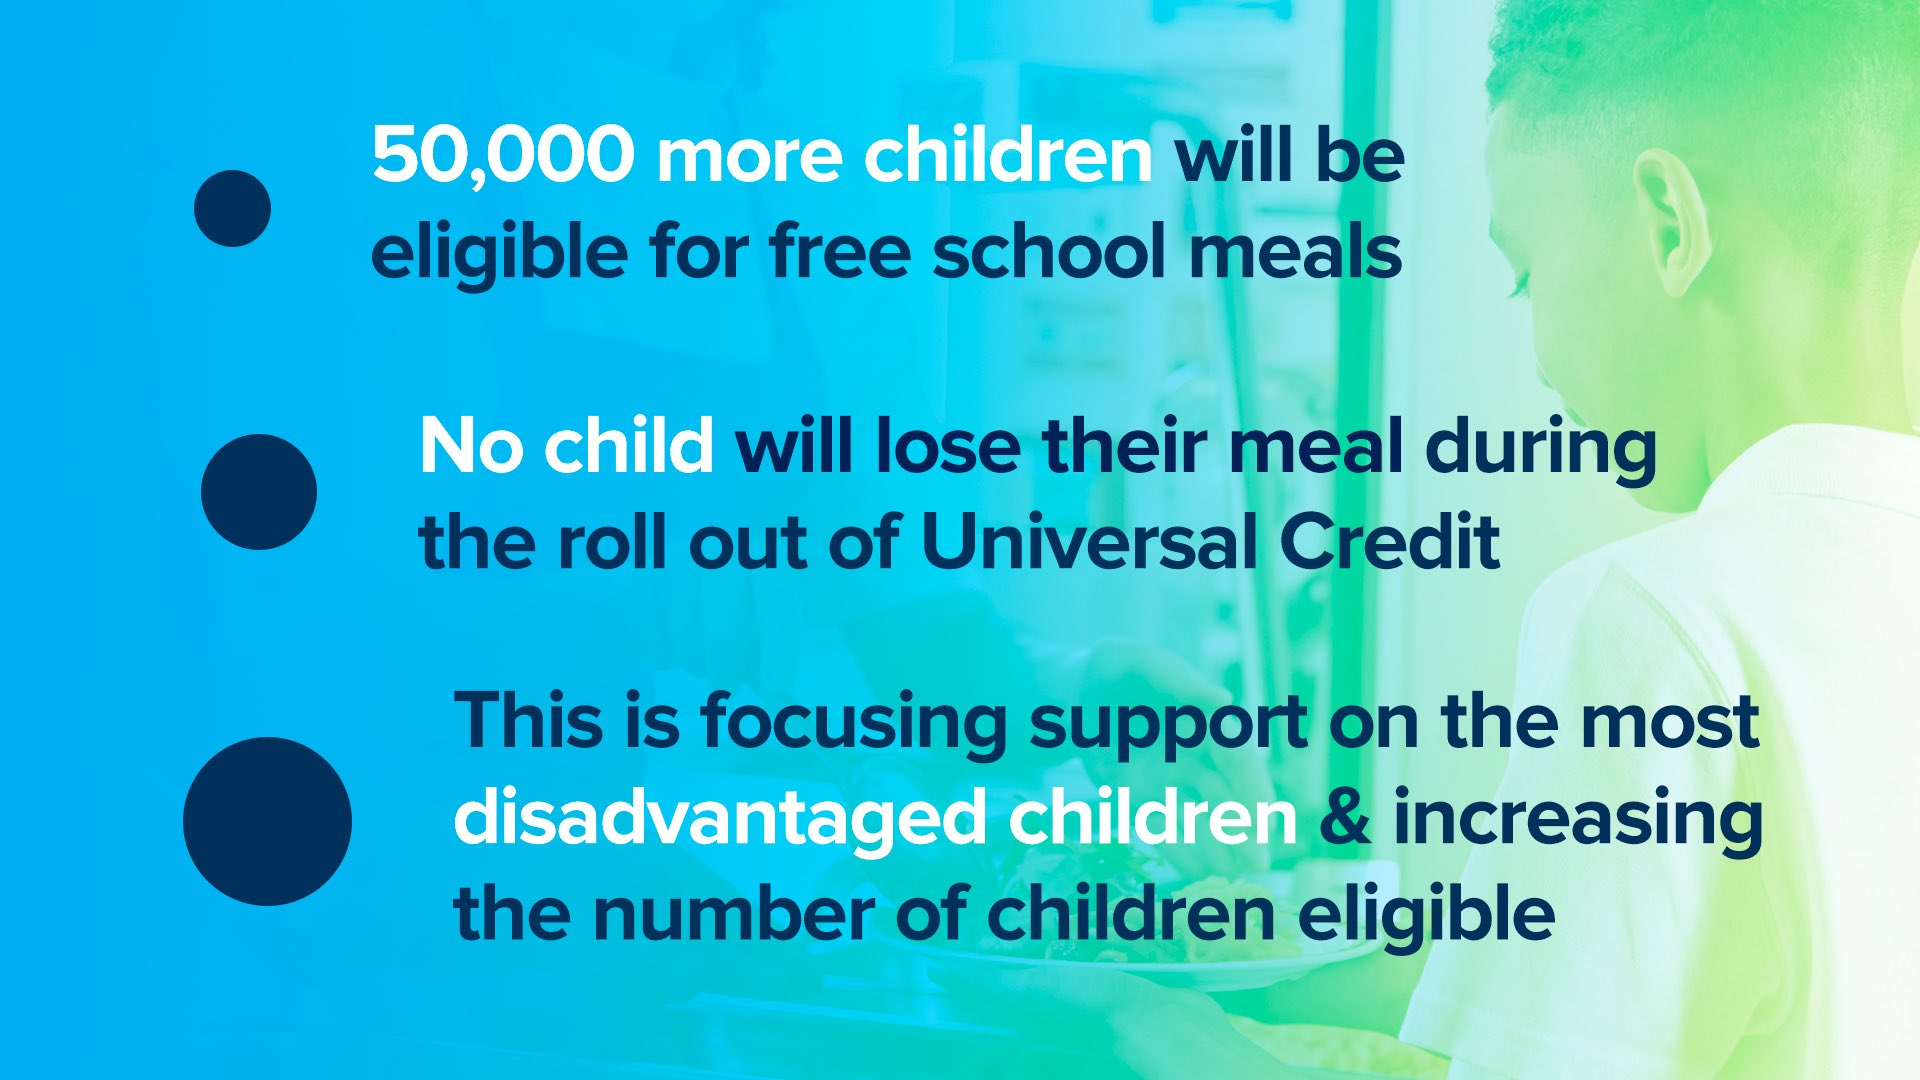 The facts on changes to eligibility for free school meals: https://t.co/zrcsc0tLIp